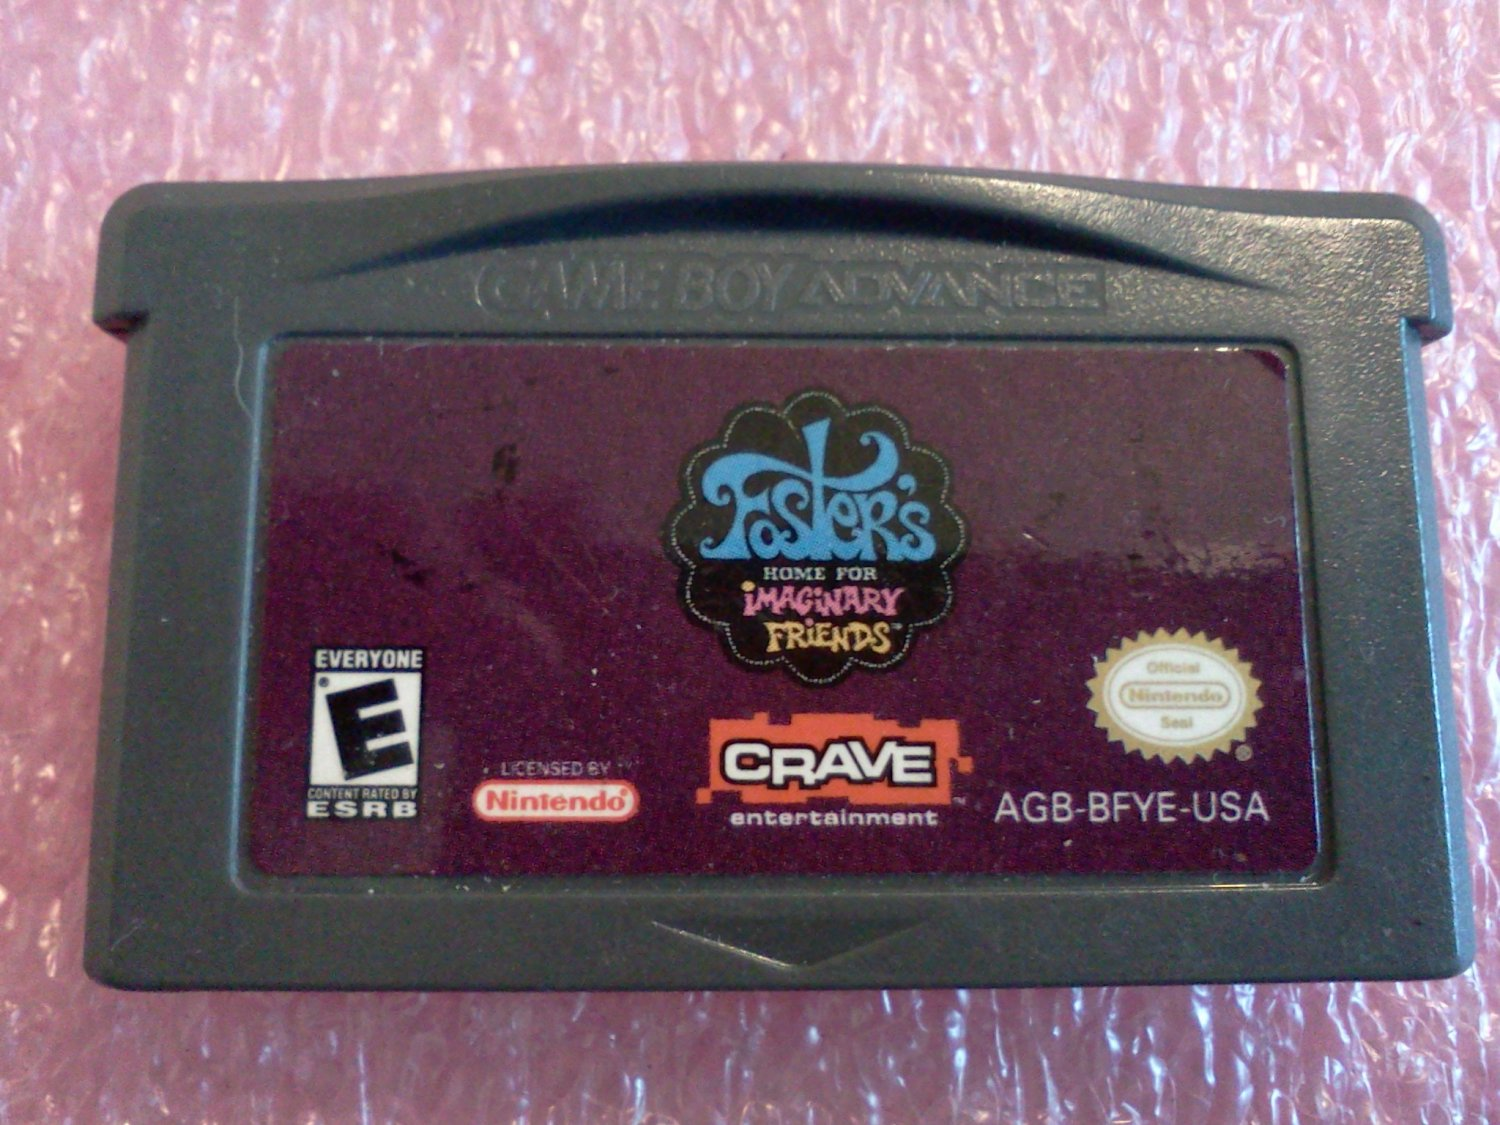 Foster's Home for Imaginary Friends (Nintendo Game Boy Advance)